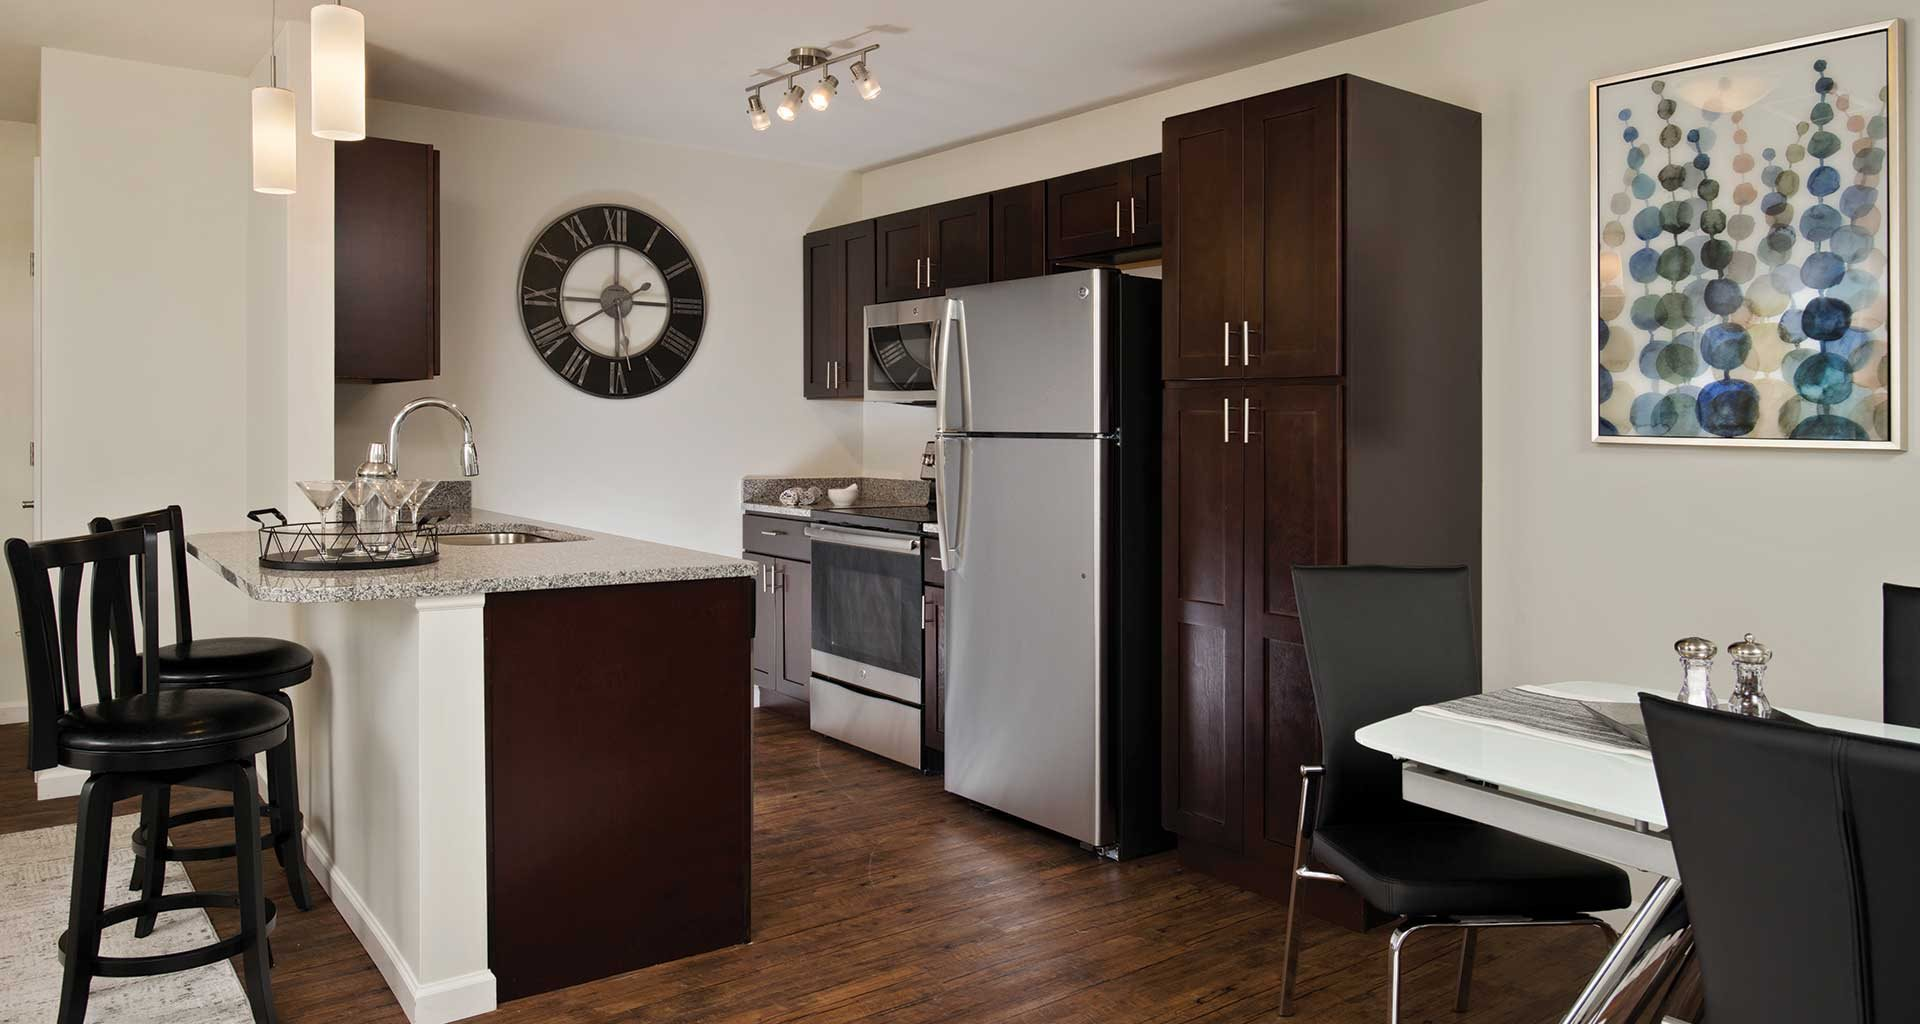 kitchen with breakfast bar at Deerfield Place, Utica, New York